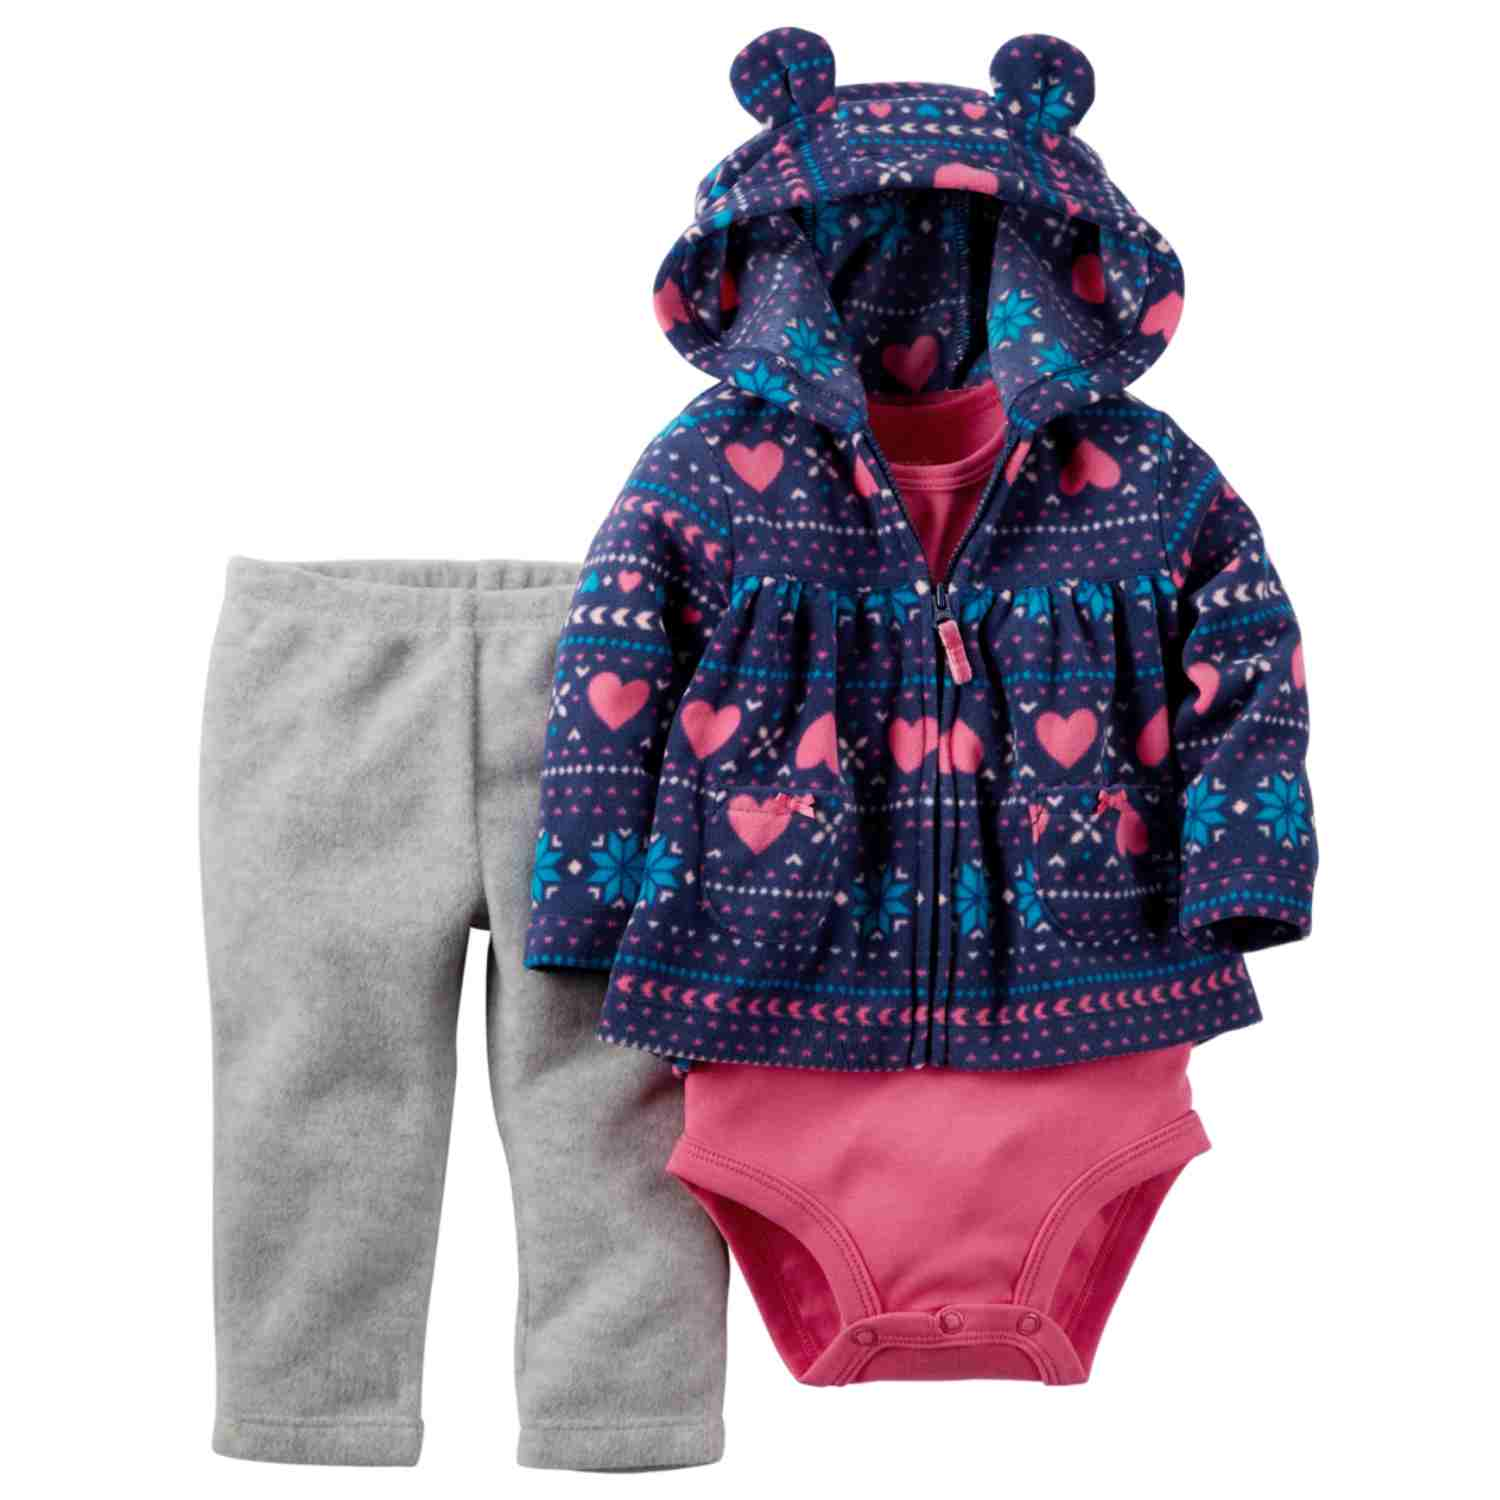 Carters Infant Girls 3 Piece Nordic Heart Outfit Creeper Pants & Hoodie Jacket